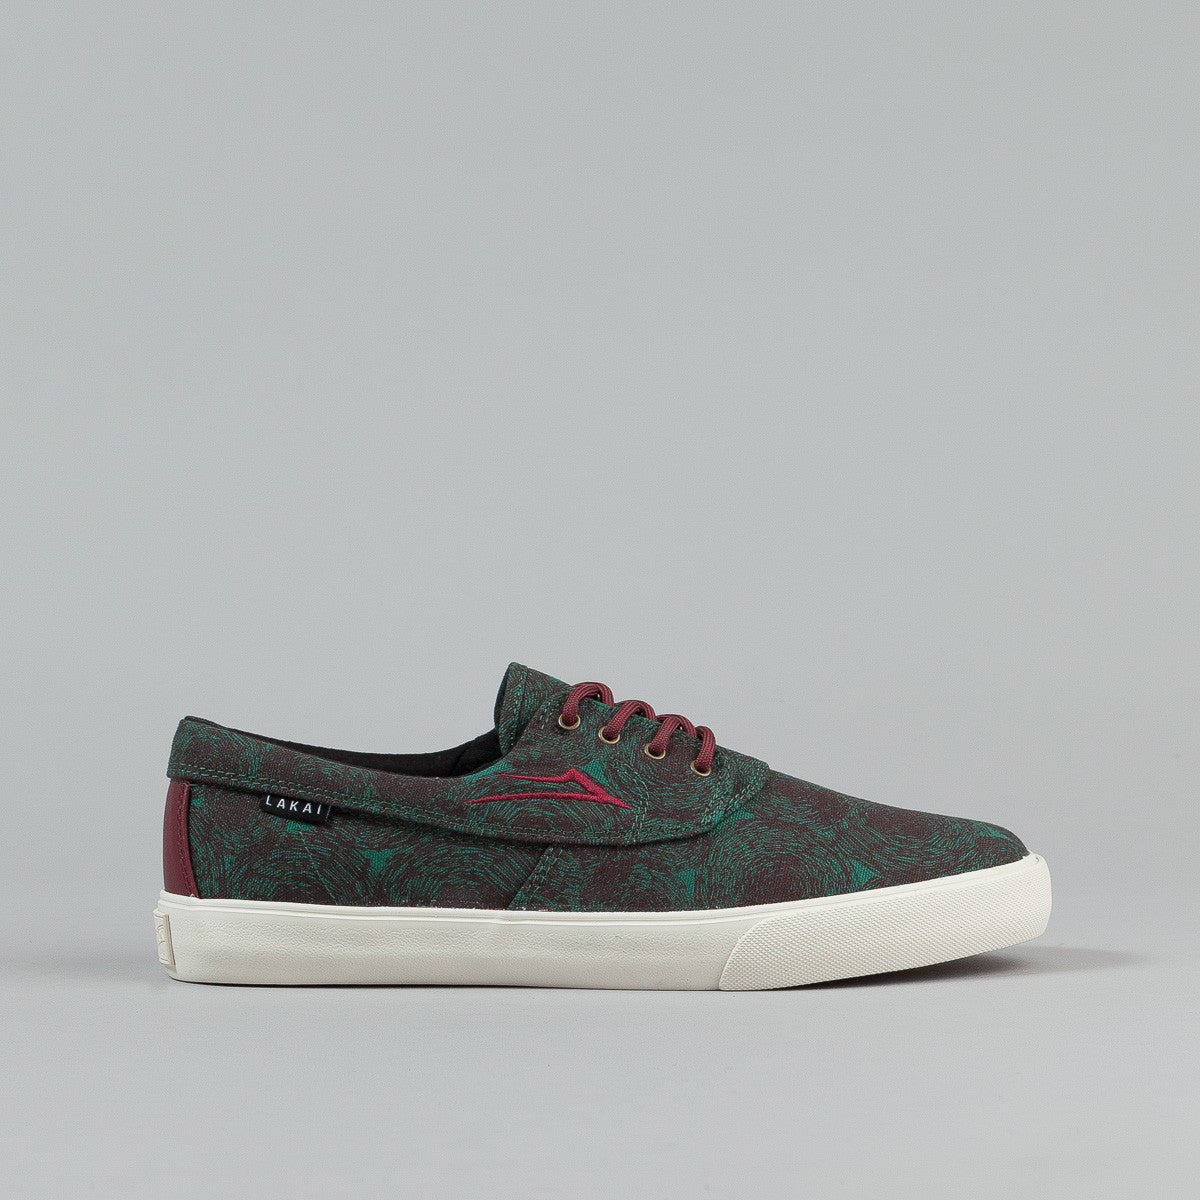 Lakai Camby Jenkins Echelon Shoes